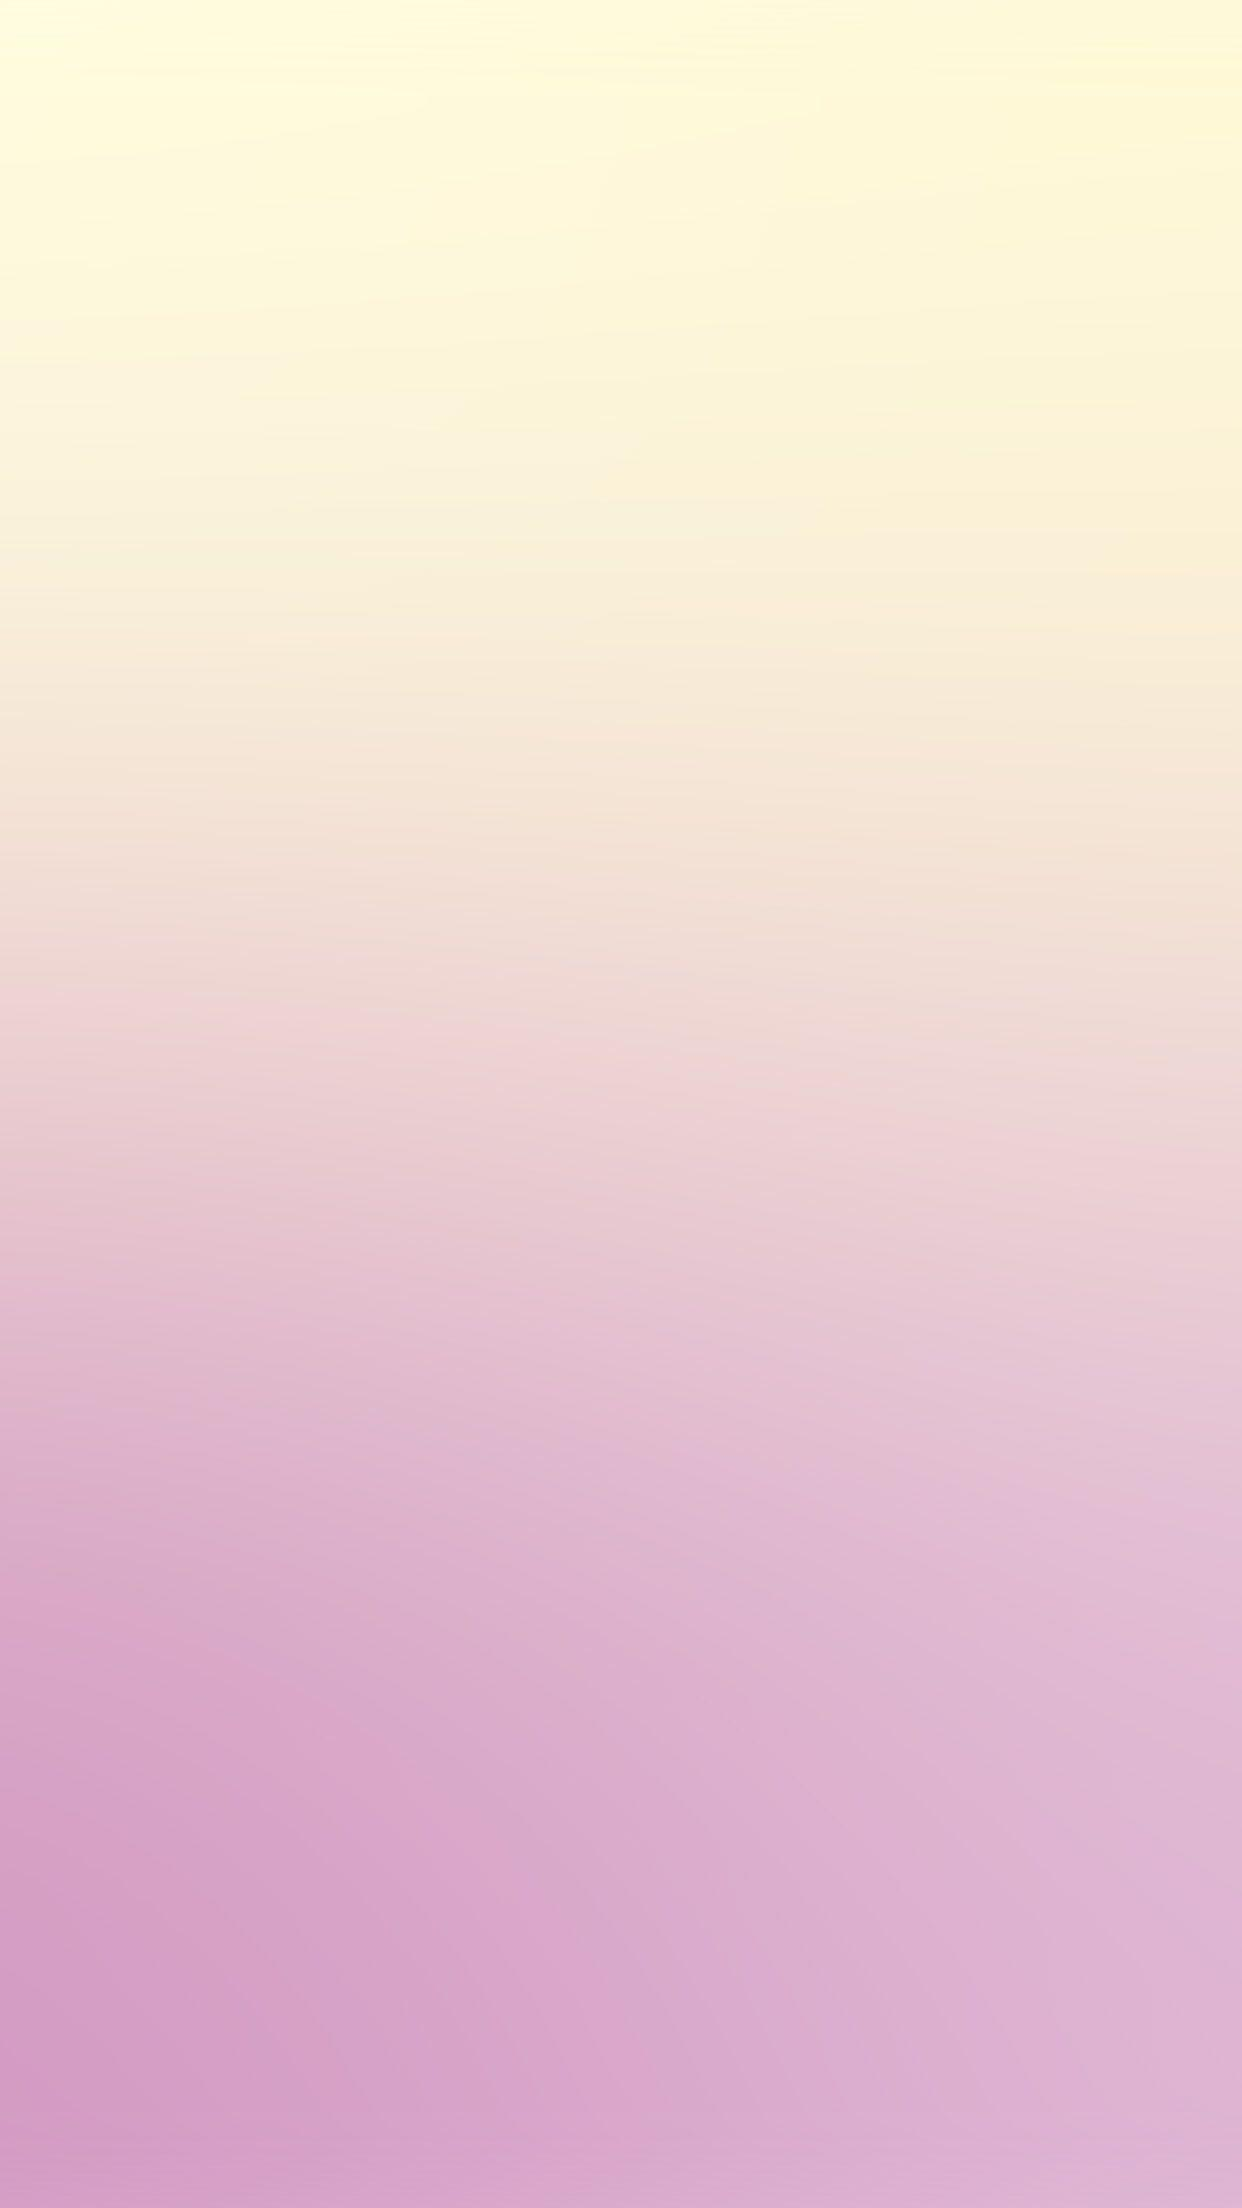 Pastel Pink Iphone Wallpapers